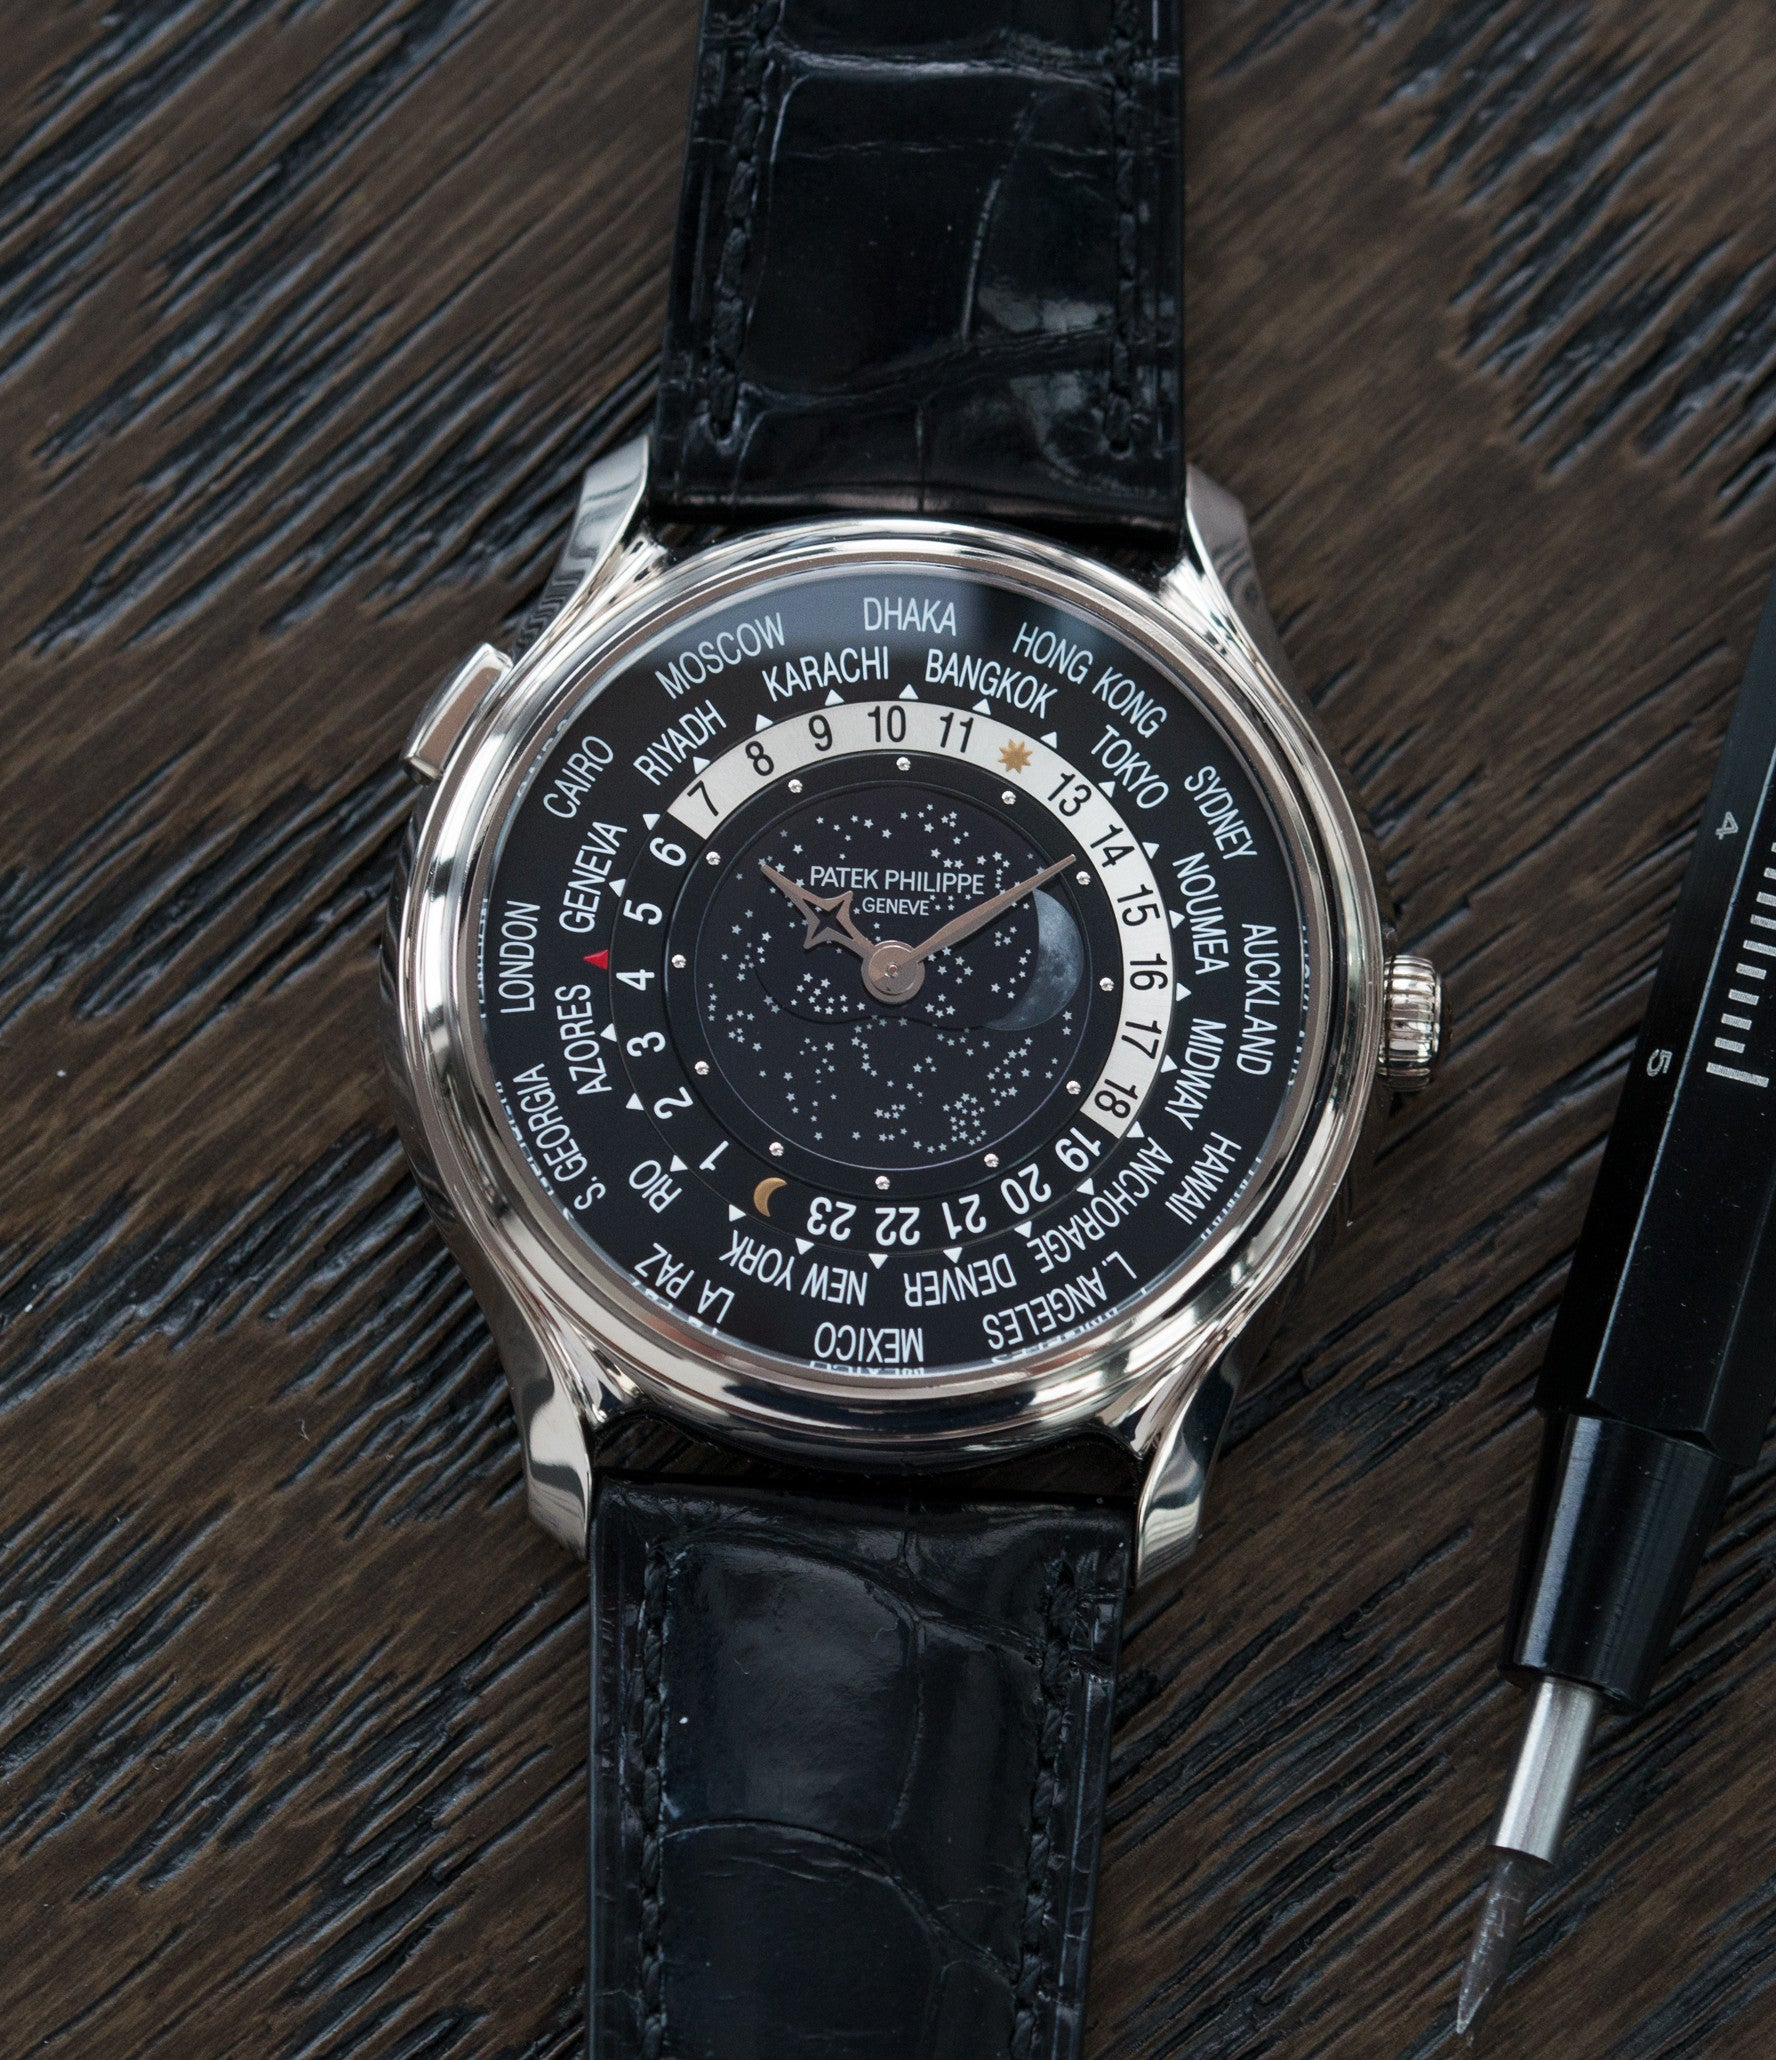 preowned Patek Philippe Worldtimer Moonphase 5575G 175th Anniversary white gold preowned dress watch for sale online at A Collected Man London rare watch specialist